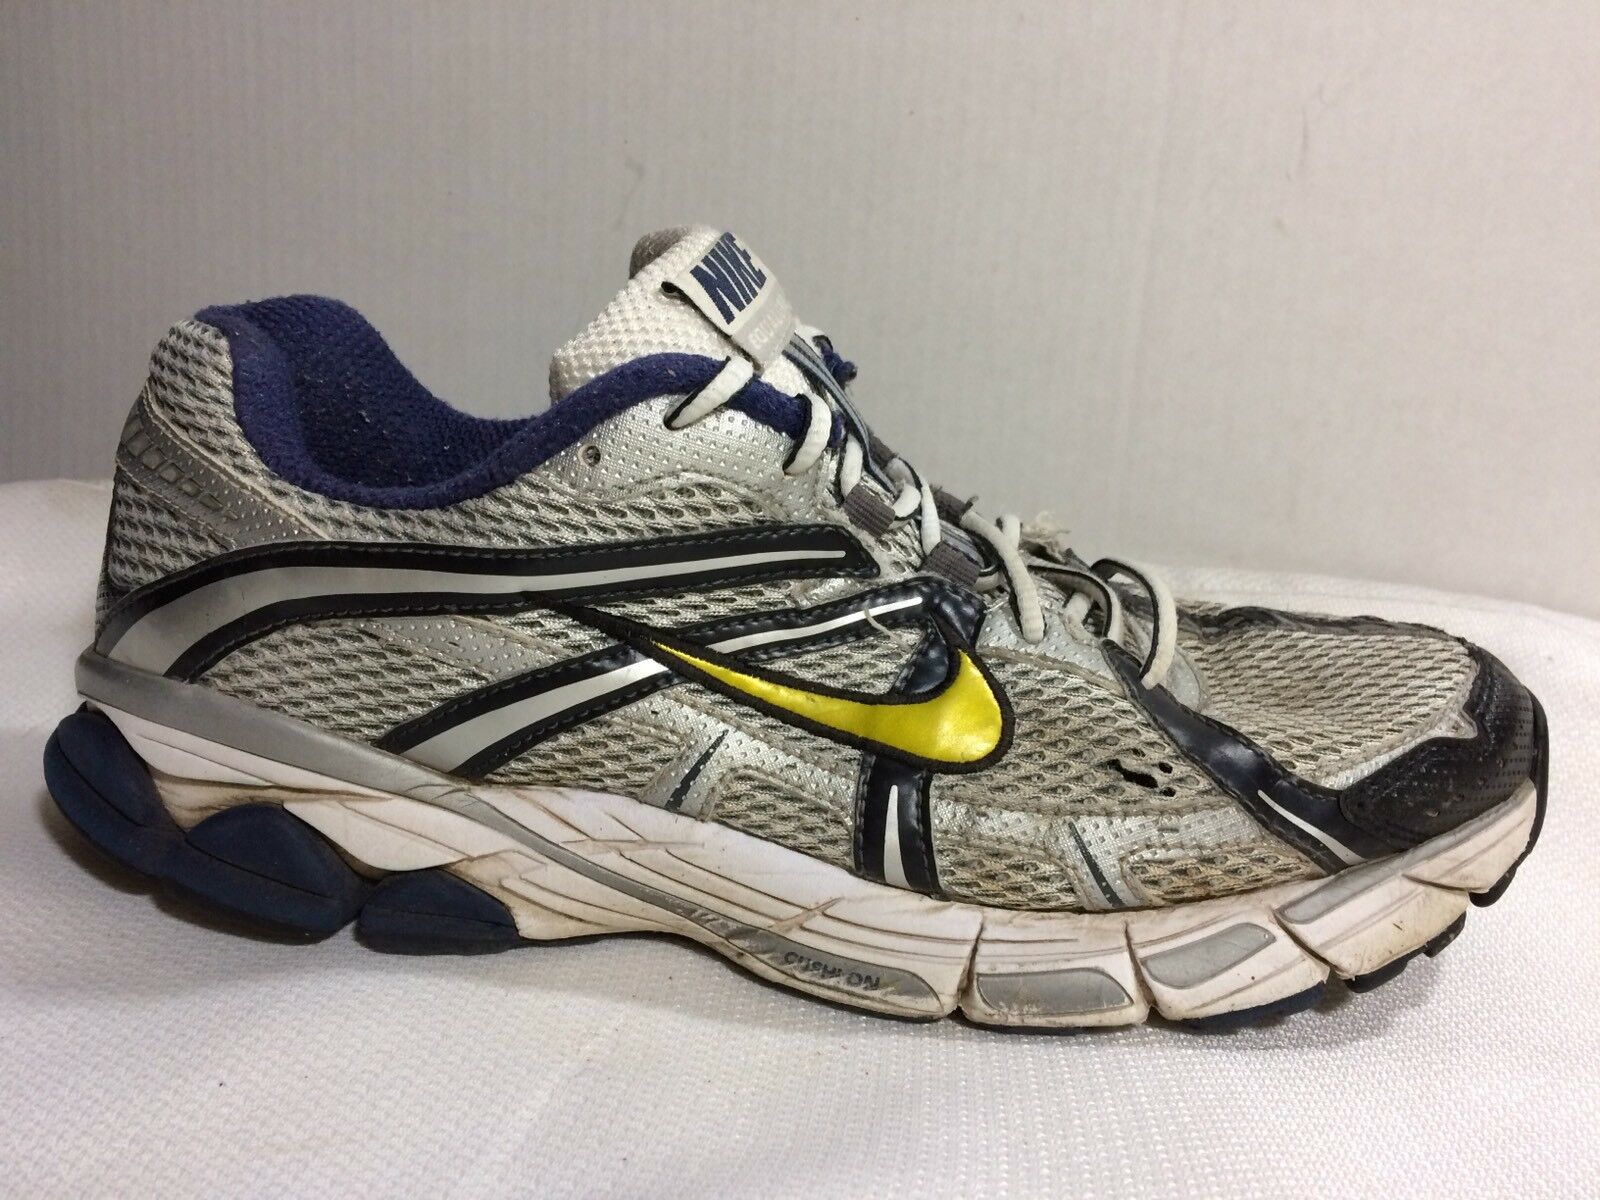 online store 6a620 90e0b Nike Equalon 3 + Running Shoes 333486 171 Silver Silver Silver Navy White  Mens 10.5 M